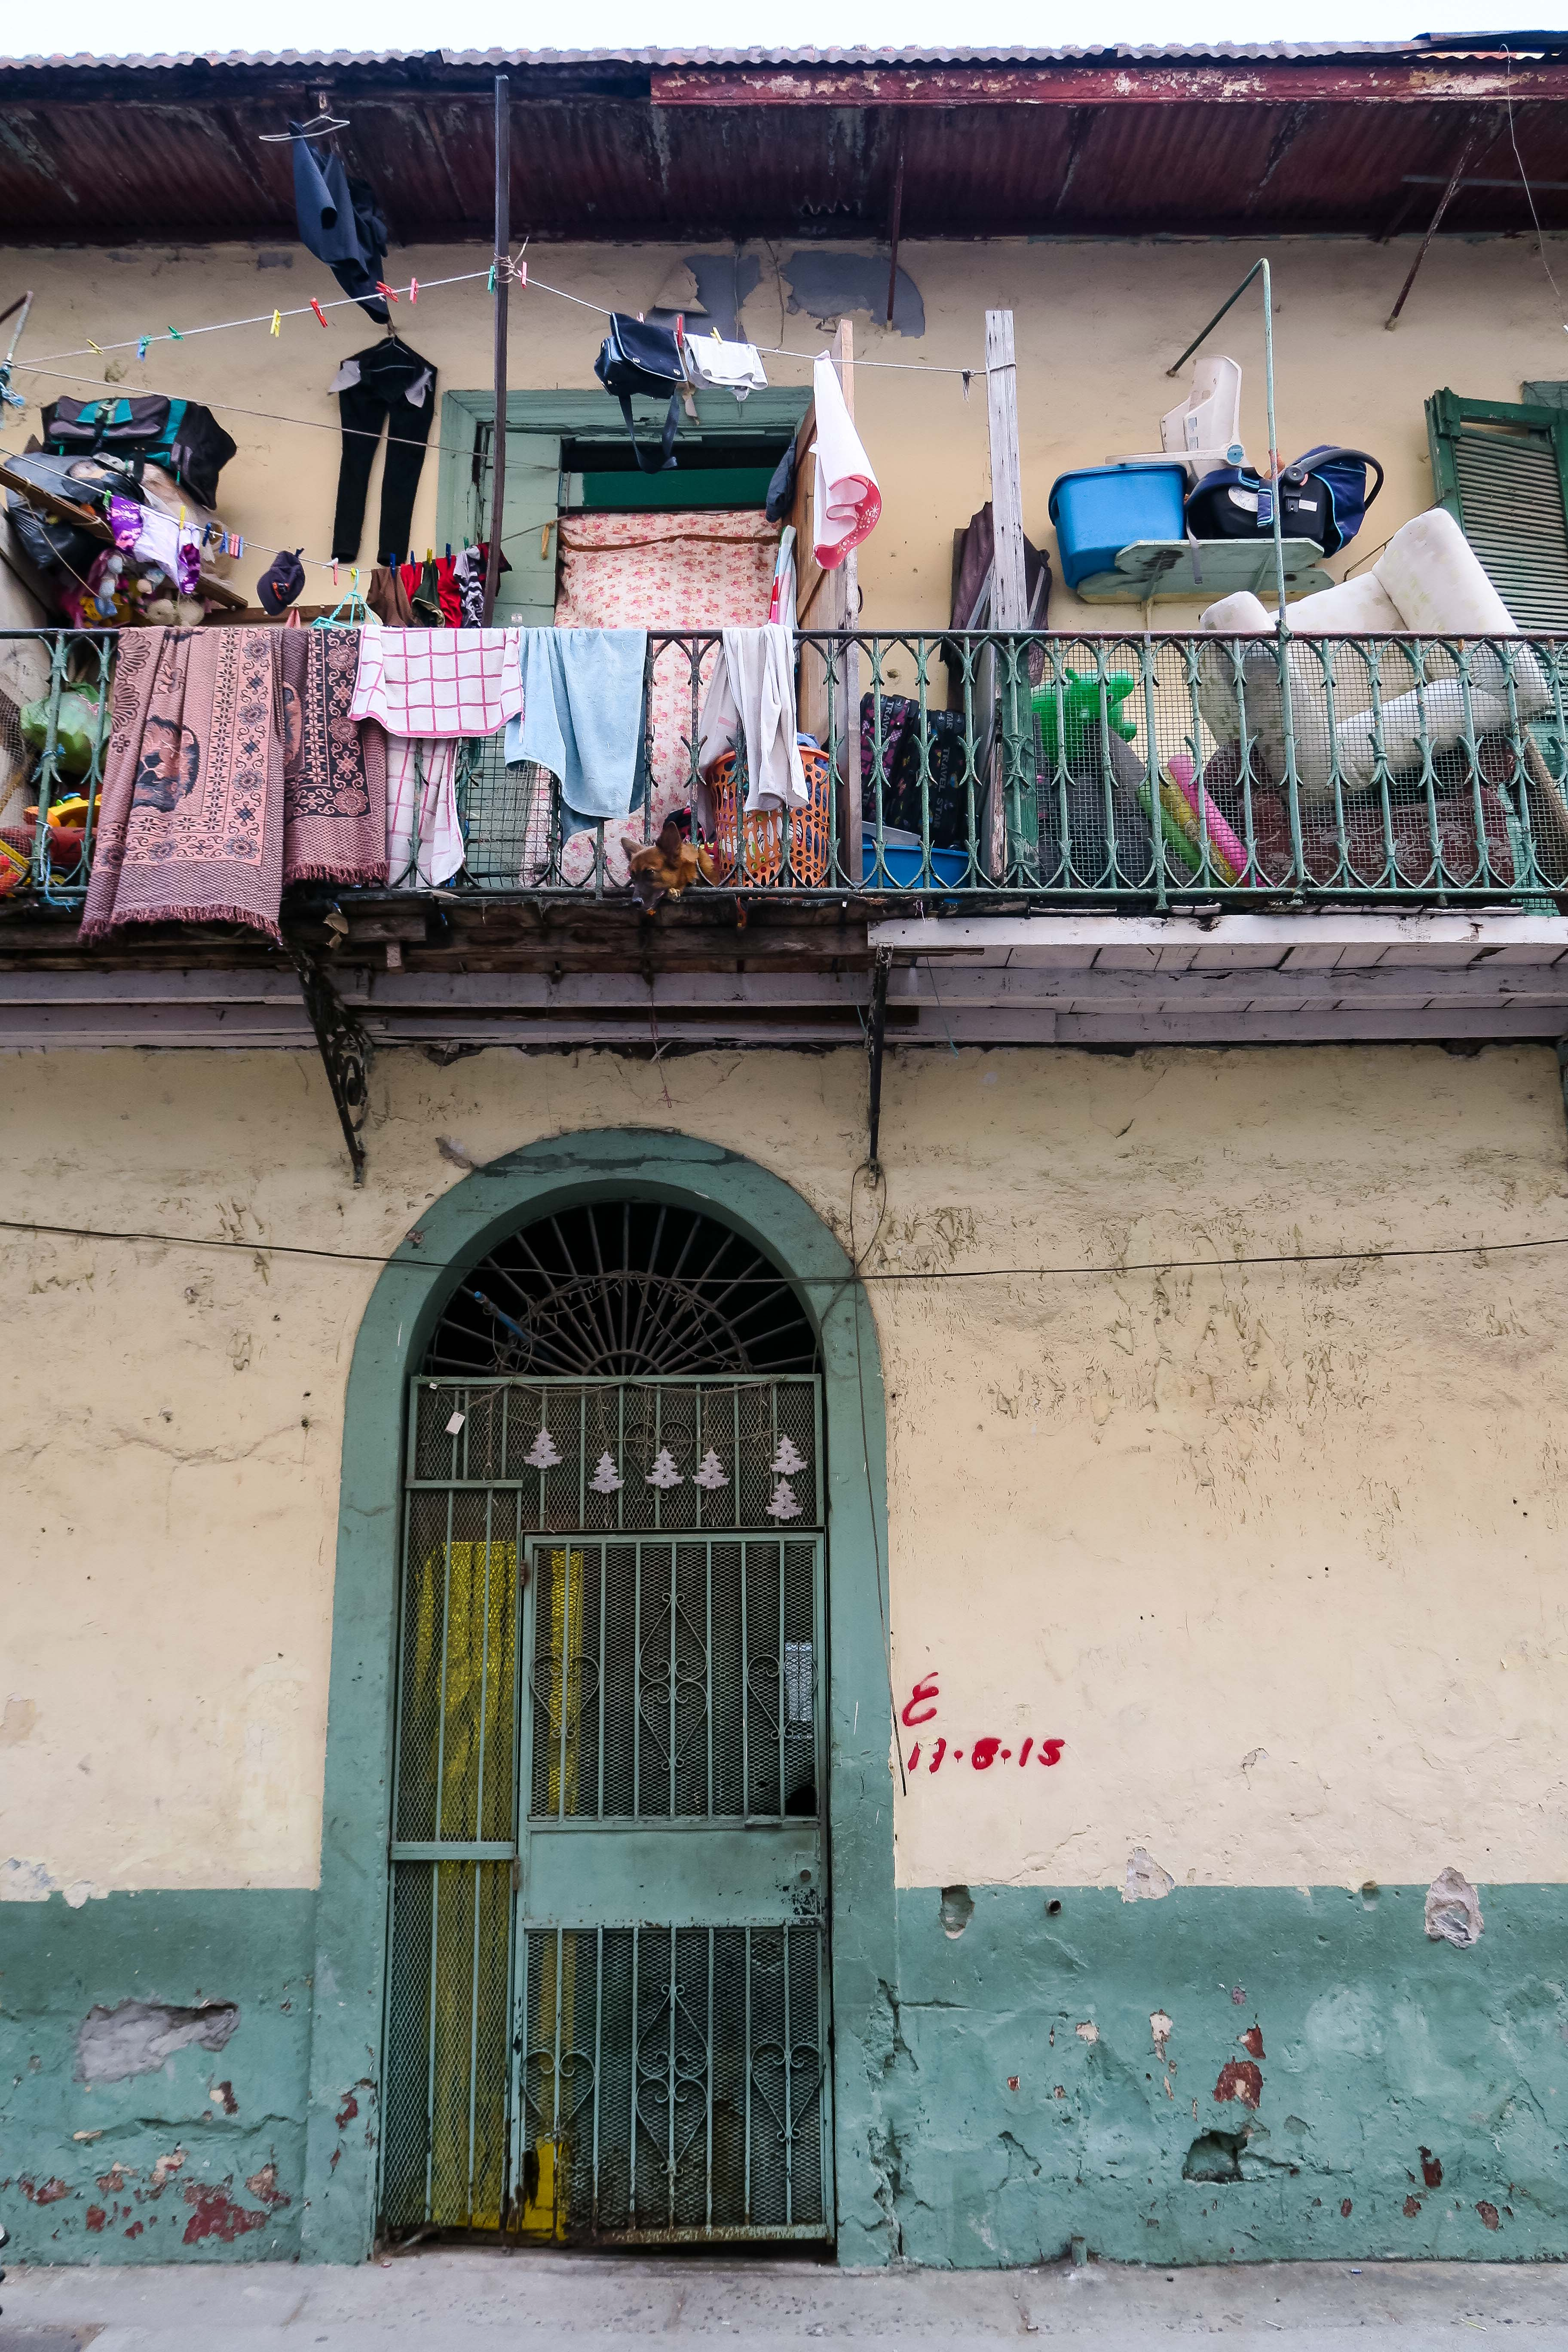 Casco Viejo Travel Diary & Blog by Rosie Andre (panama, panama city, wanderlust, destination, central america, south america, costa rica, tourist, photography, guide, to do, to see, nightlife, restaurants, things to do, city, map, history)